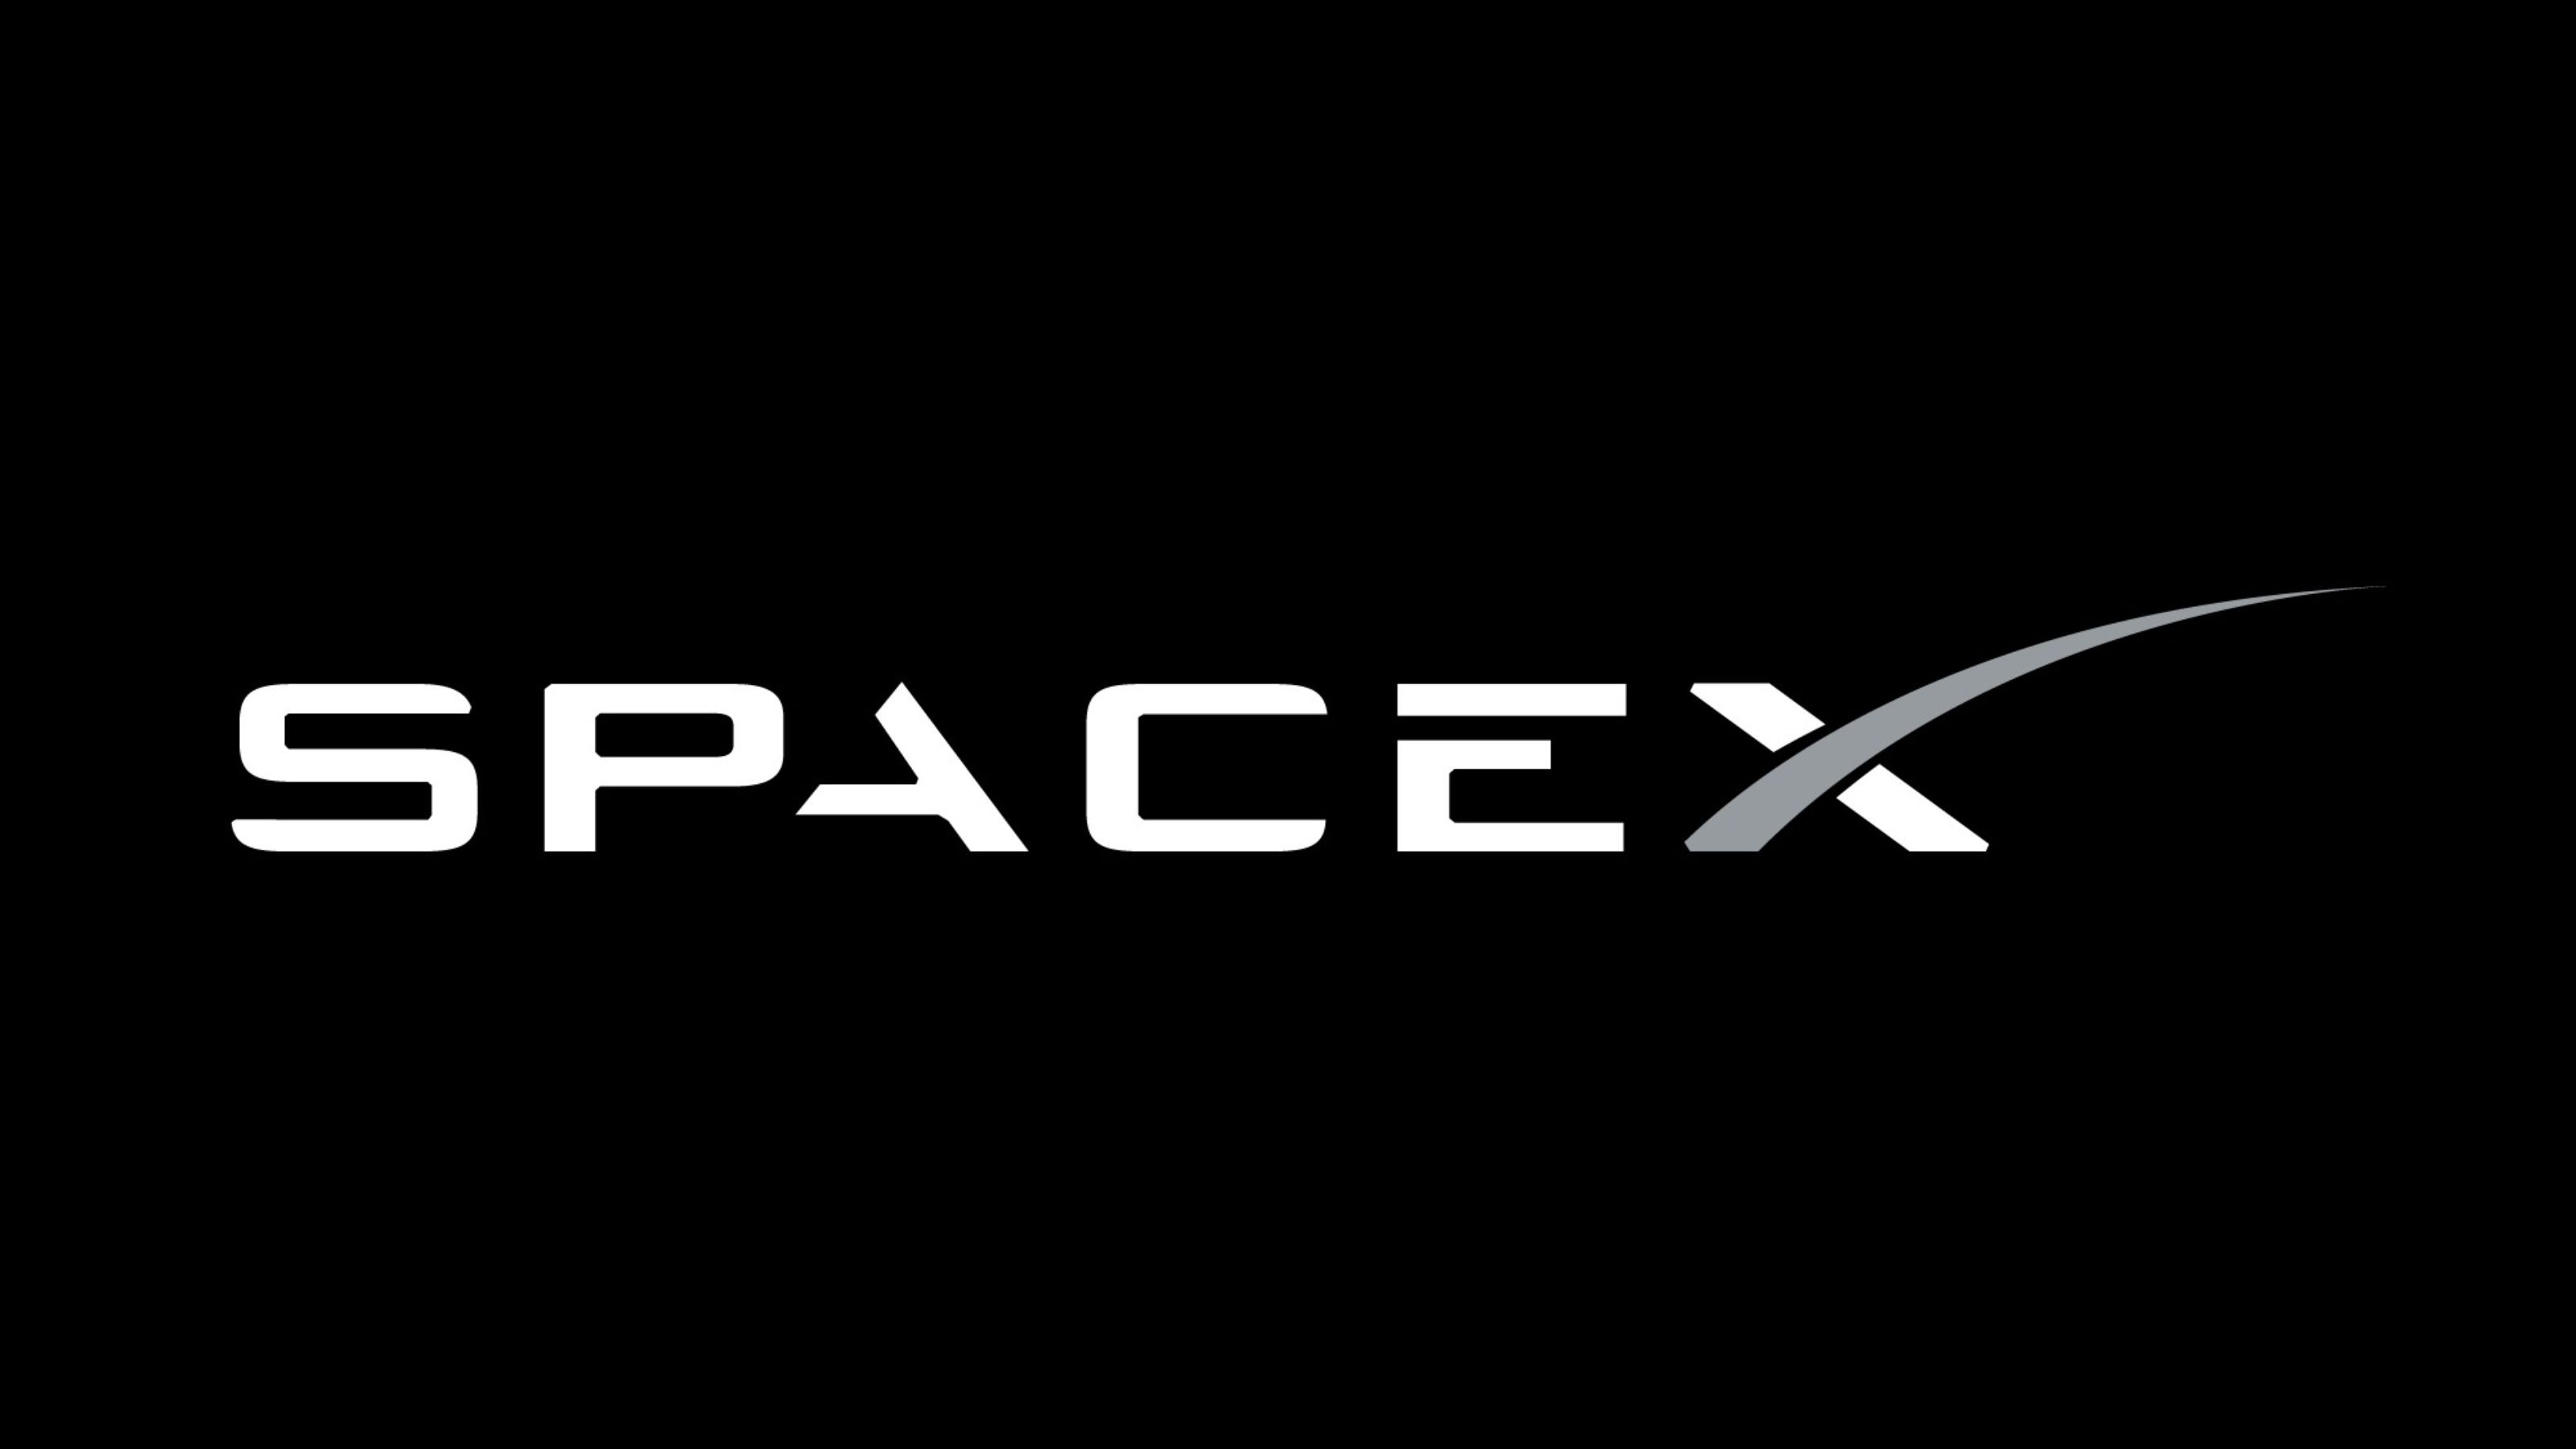 SpaceX logotyp